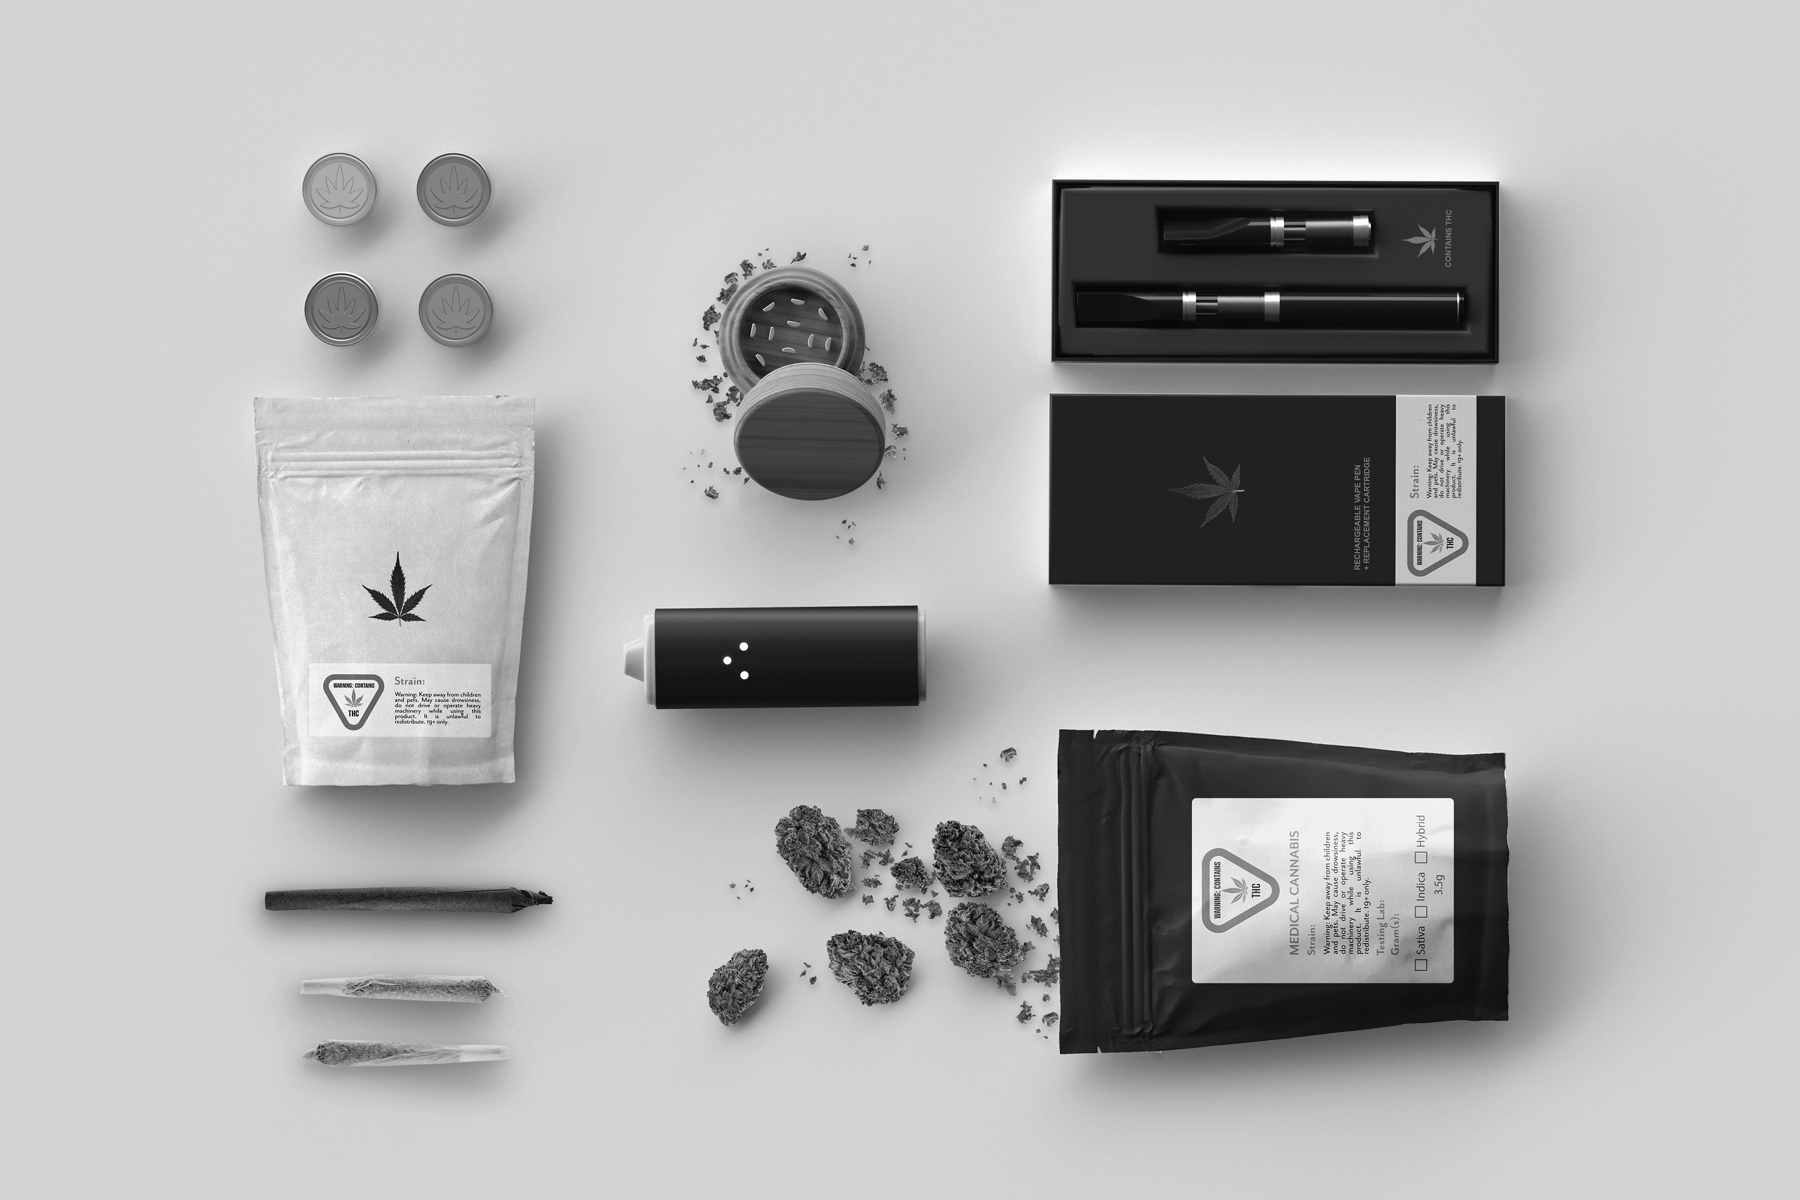 How Cannabis Brands Are Taking Sensory Experiences to the Next Level | Rolling Stone